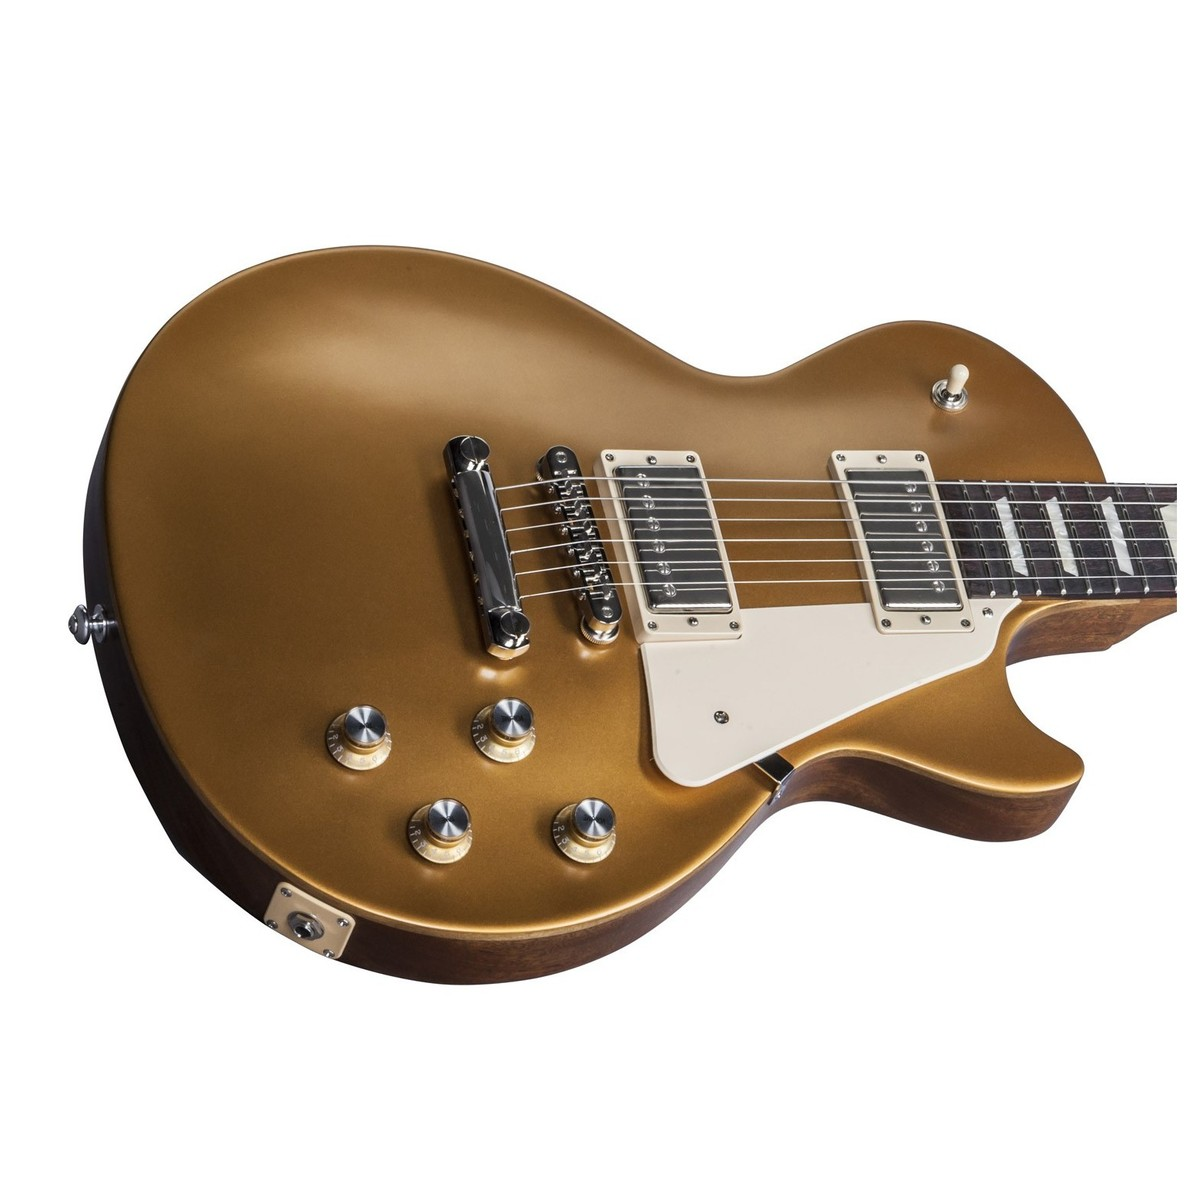 Disc gibson les paul tribute t electric guitar satin gold for Chitarra gibson les paul